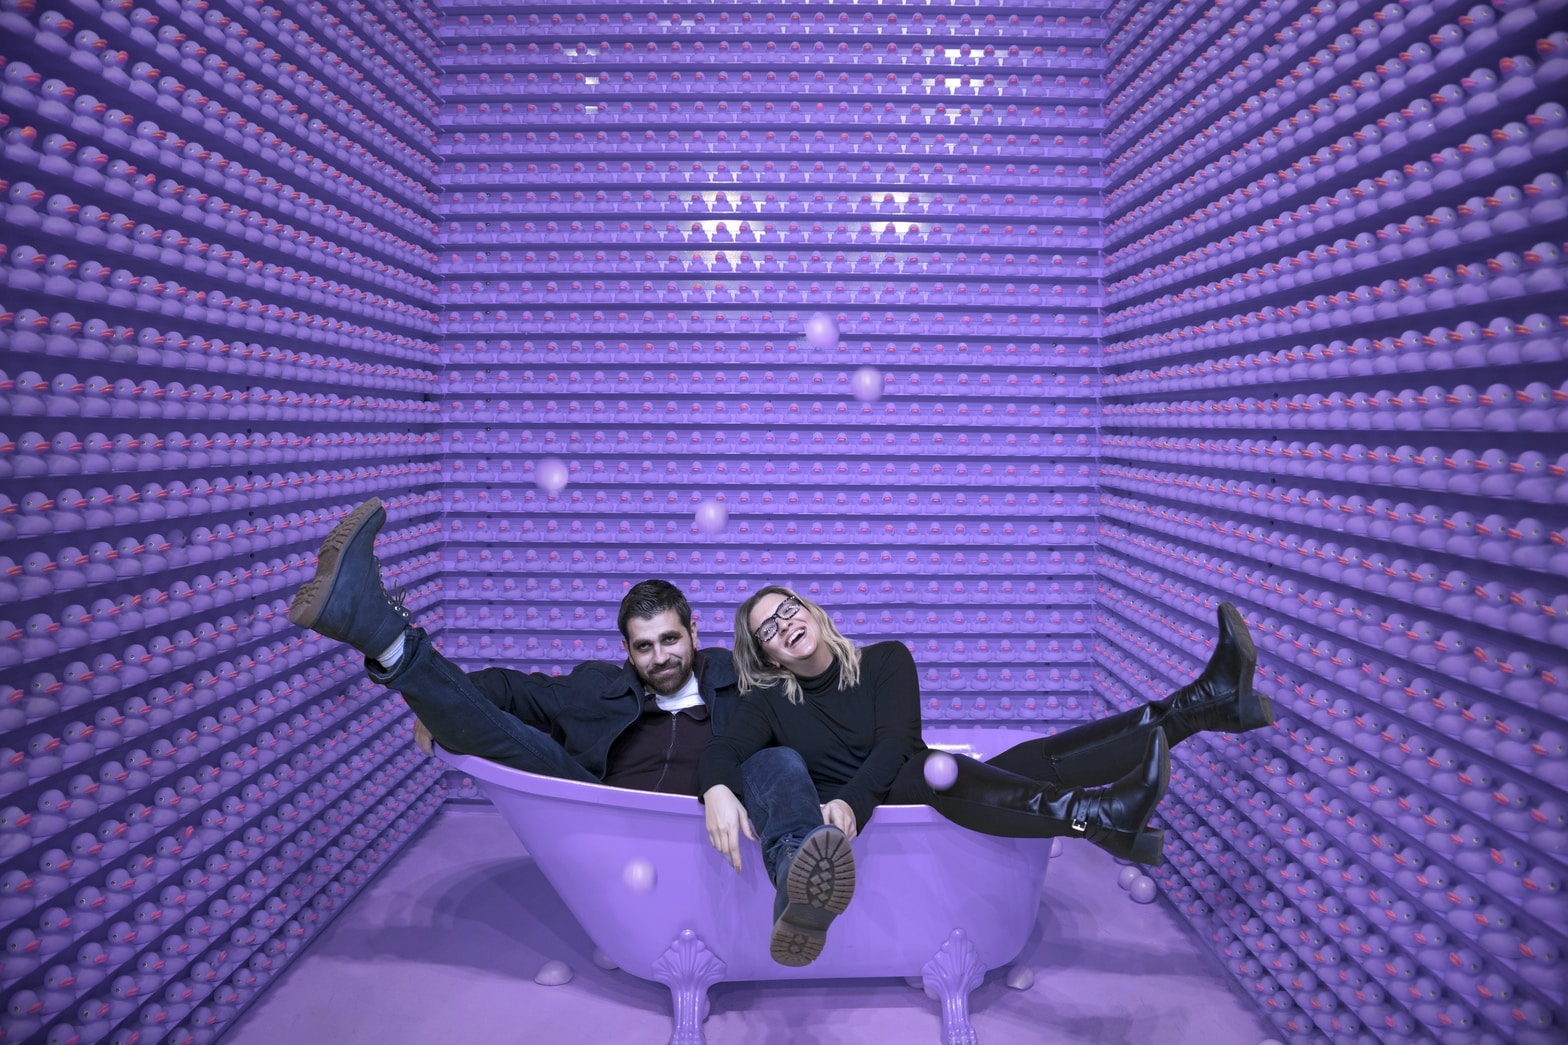 man and woman sitting in a purple bathtub